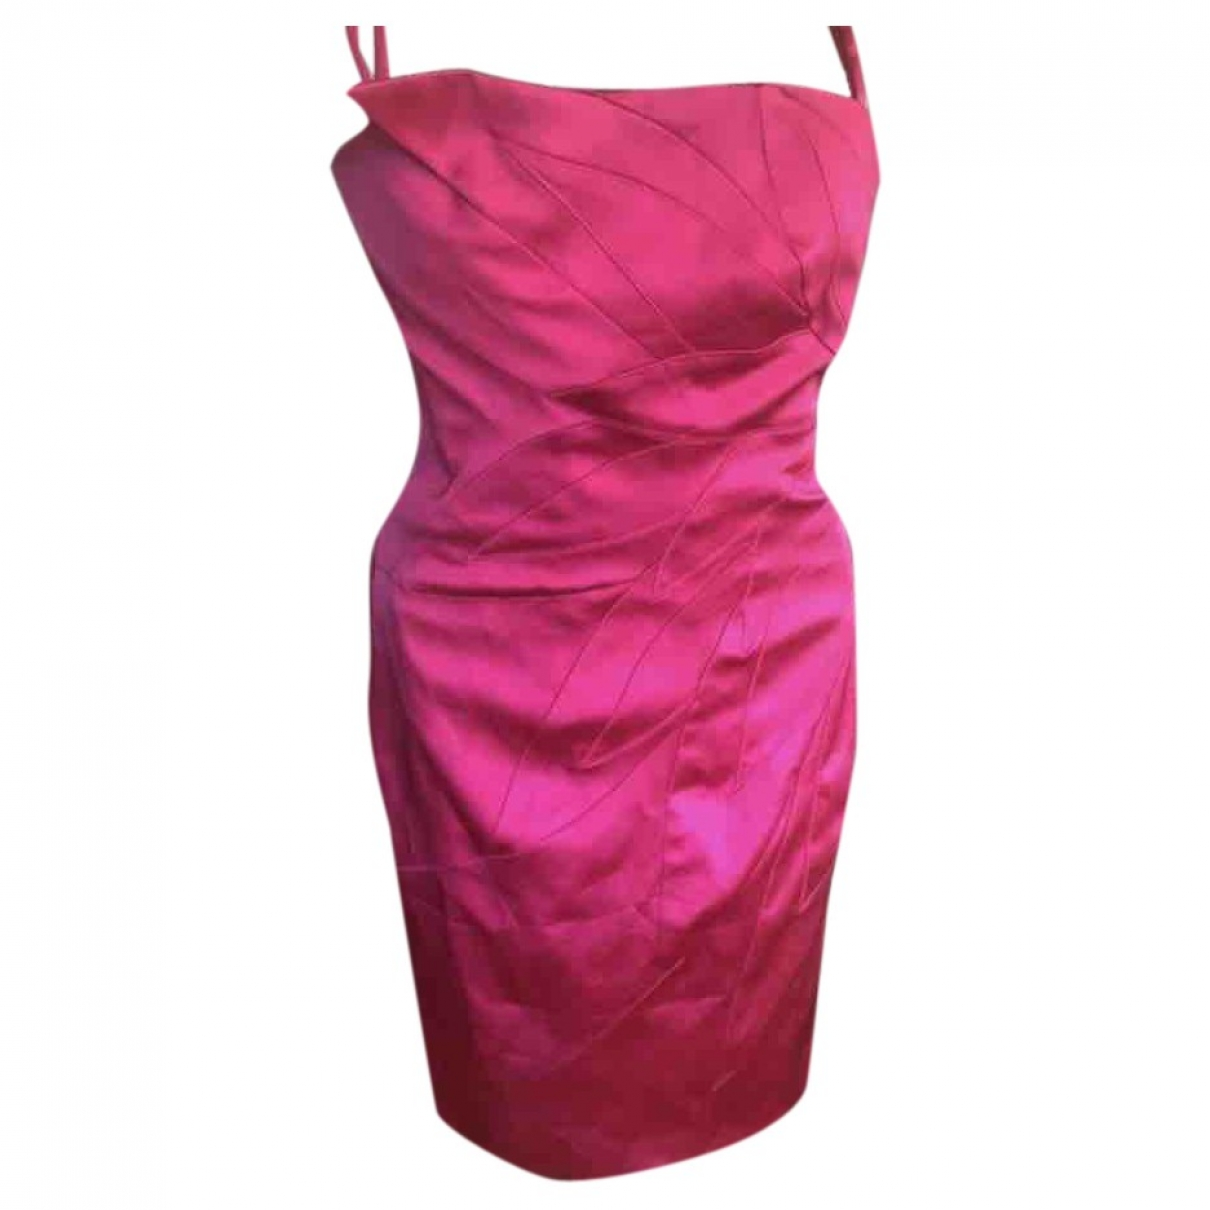 Karen Millen \N Pink dress for Women 12 UK